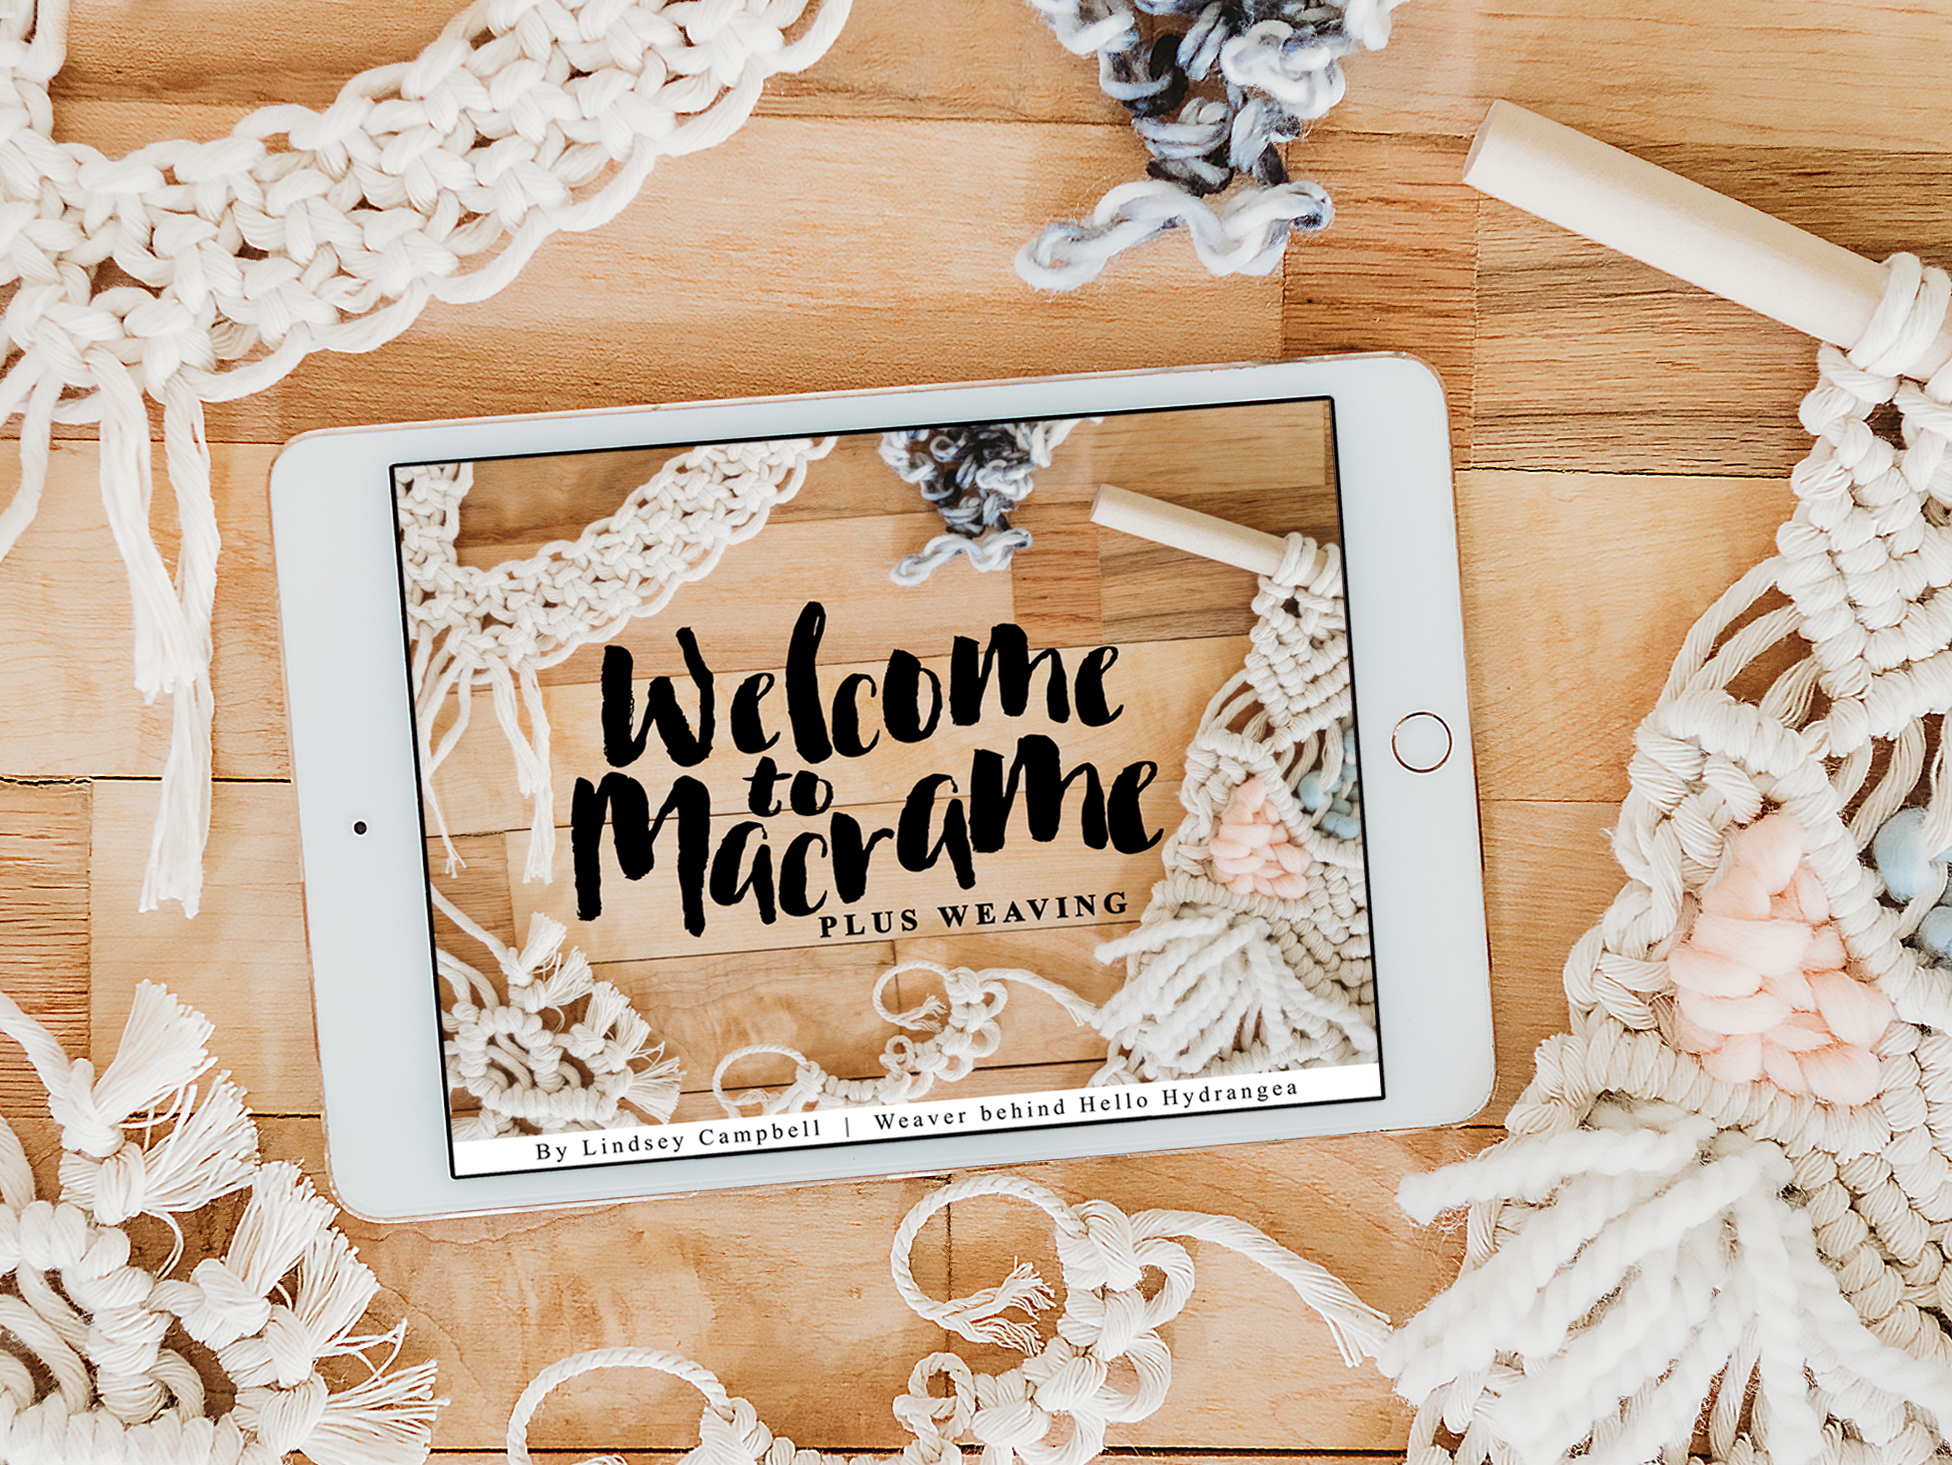 Click Here - for complete macrame video class